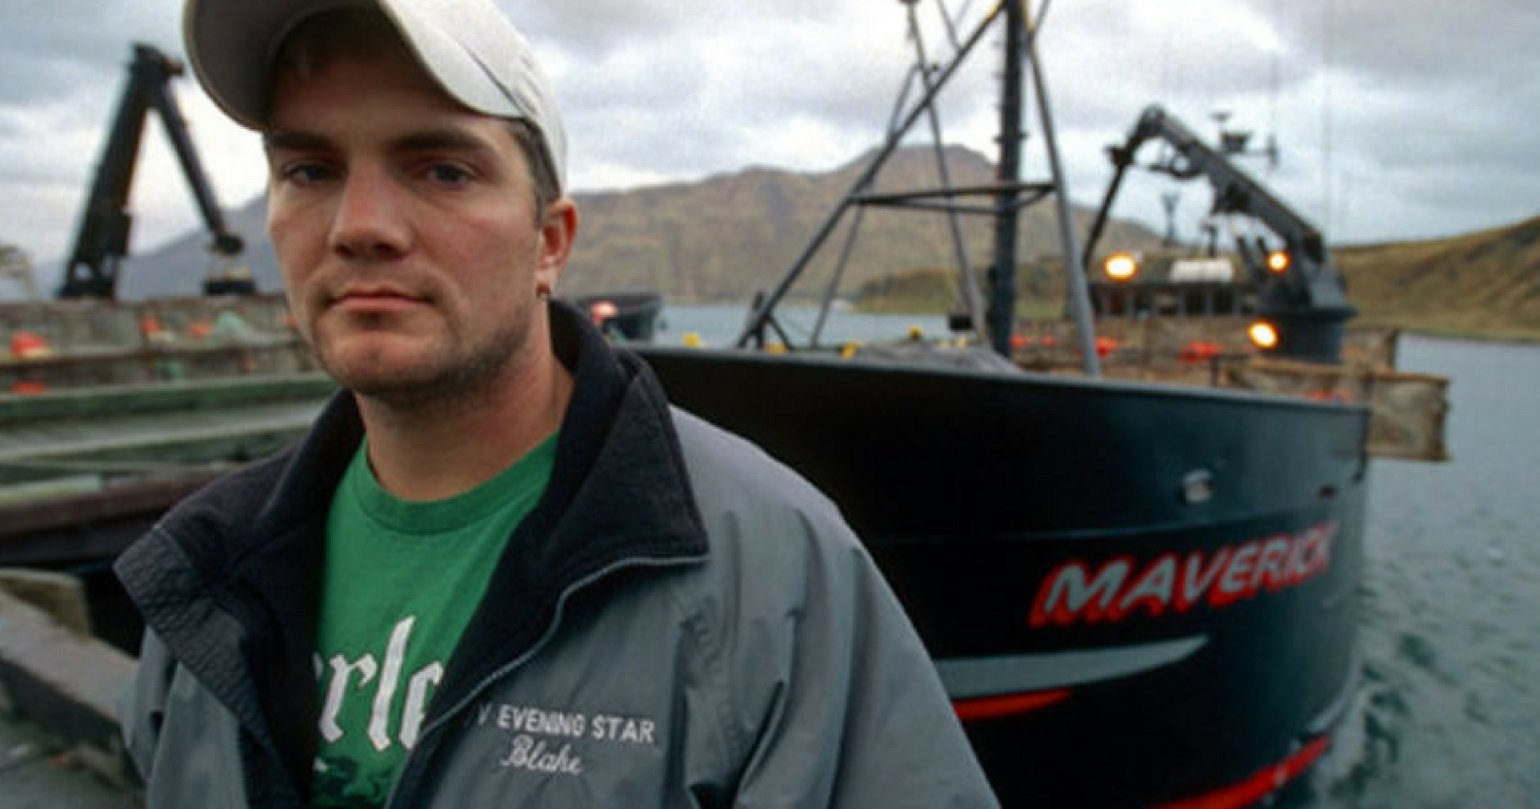 'Deadliest Catch' captain Blake Painter found dead in his OR home